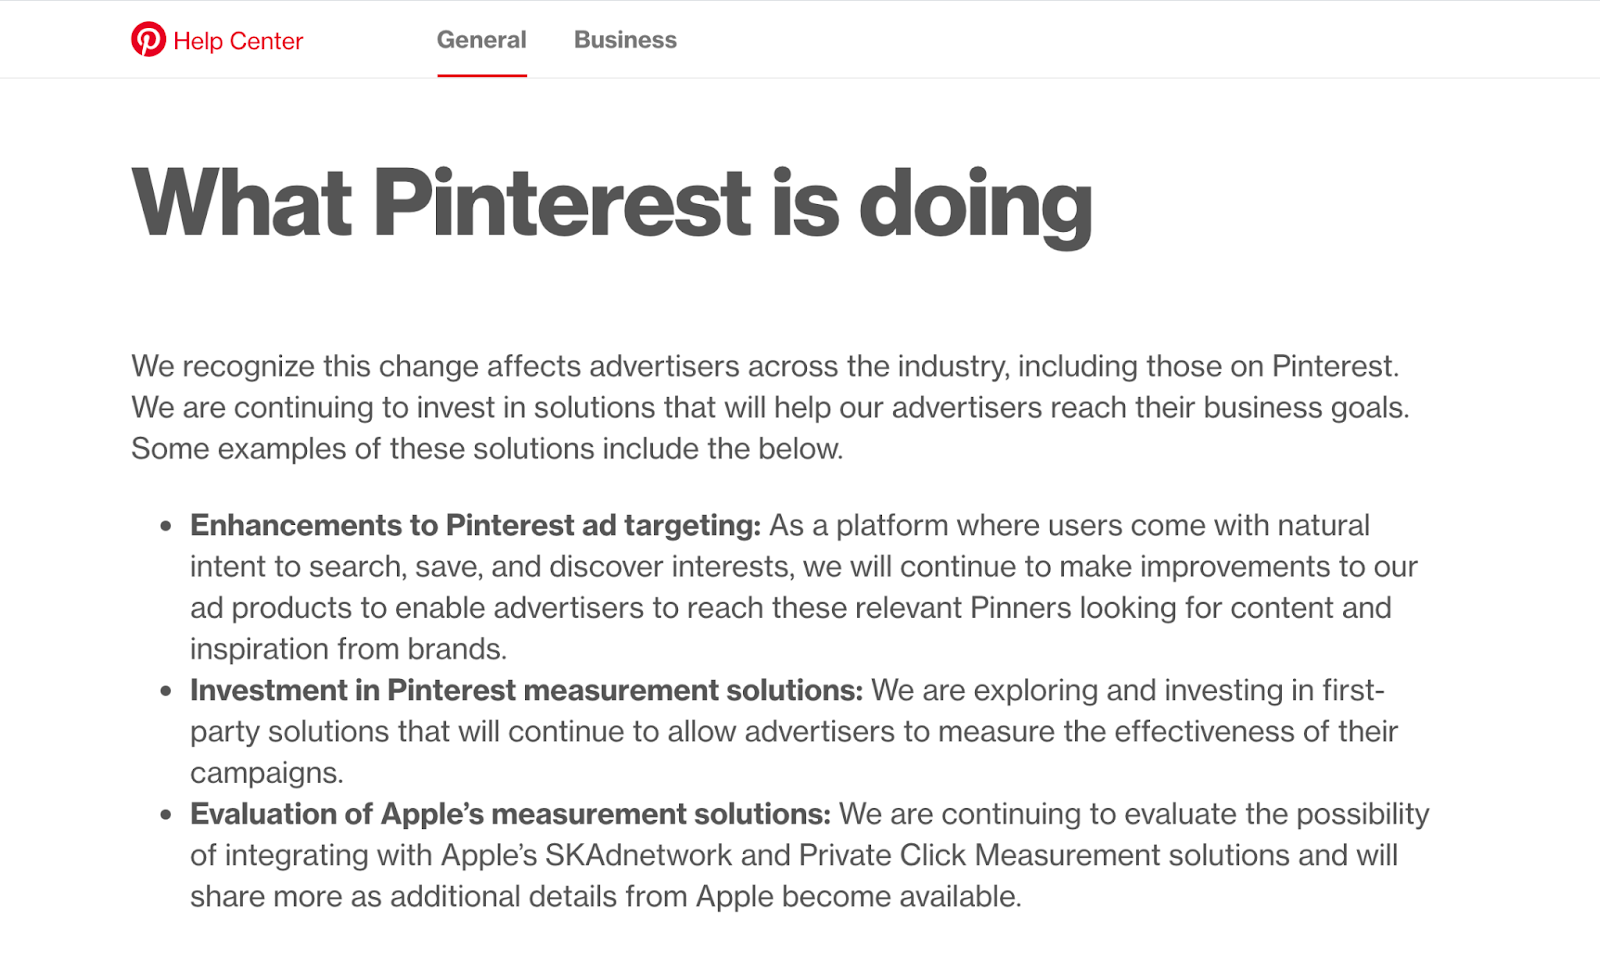 Pinterest's suggestions for marketing adjustments